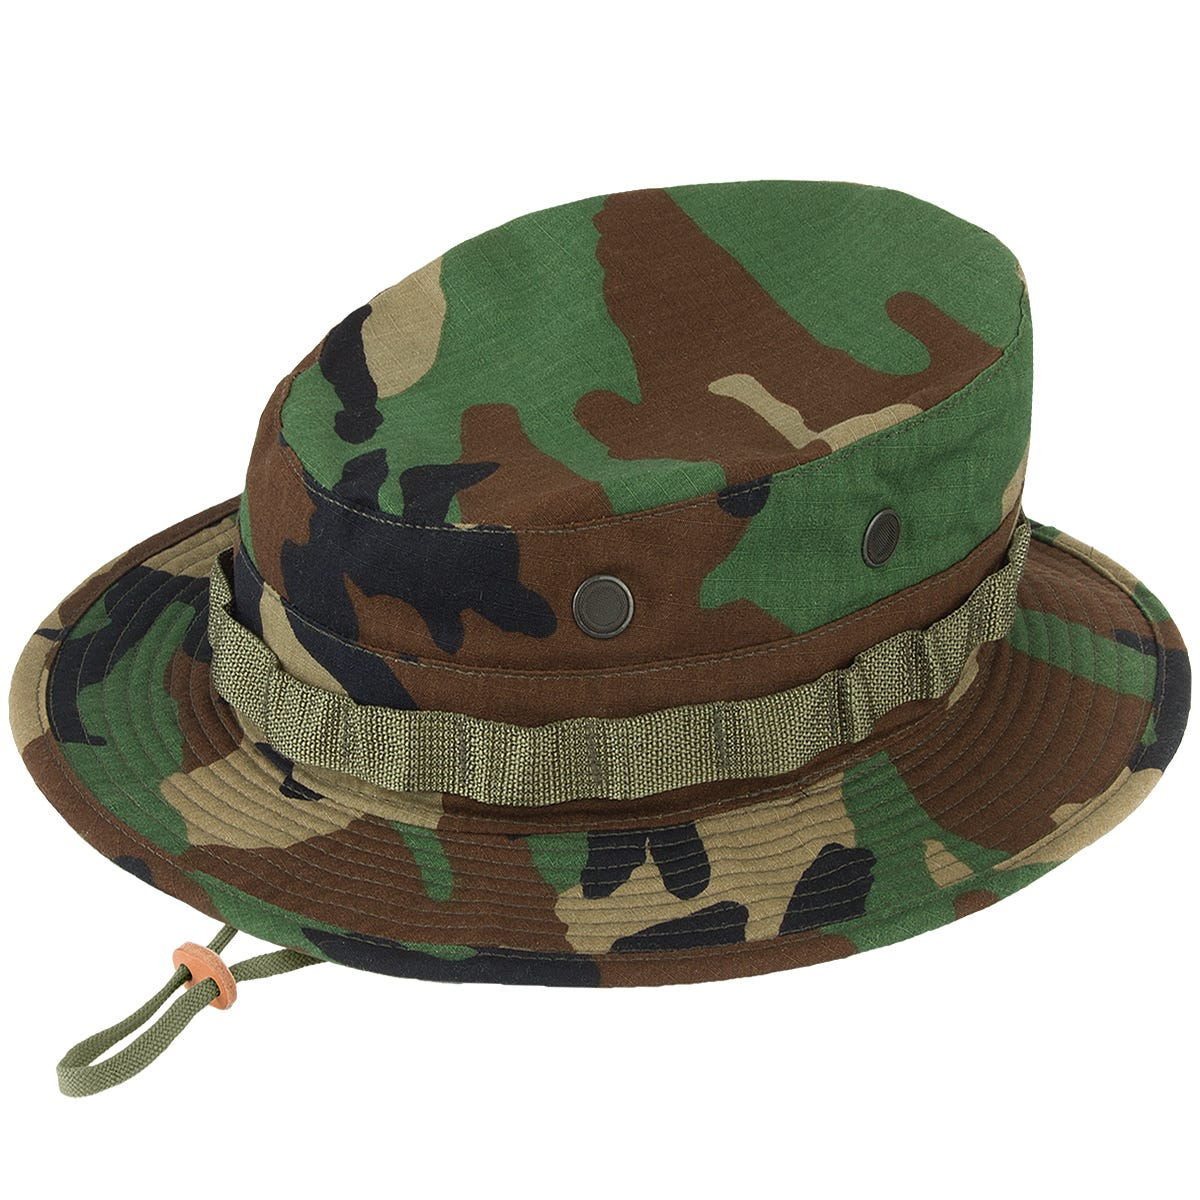 Propper Boonie Hat Cotton Ripstop Woodland b114ad515366